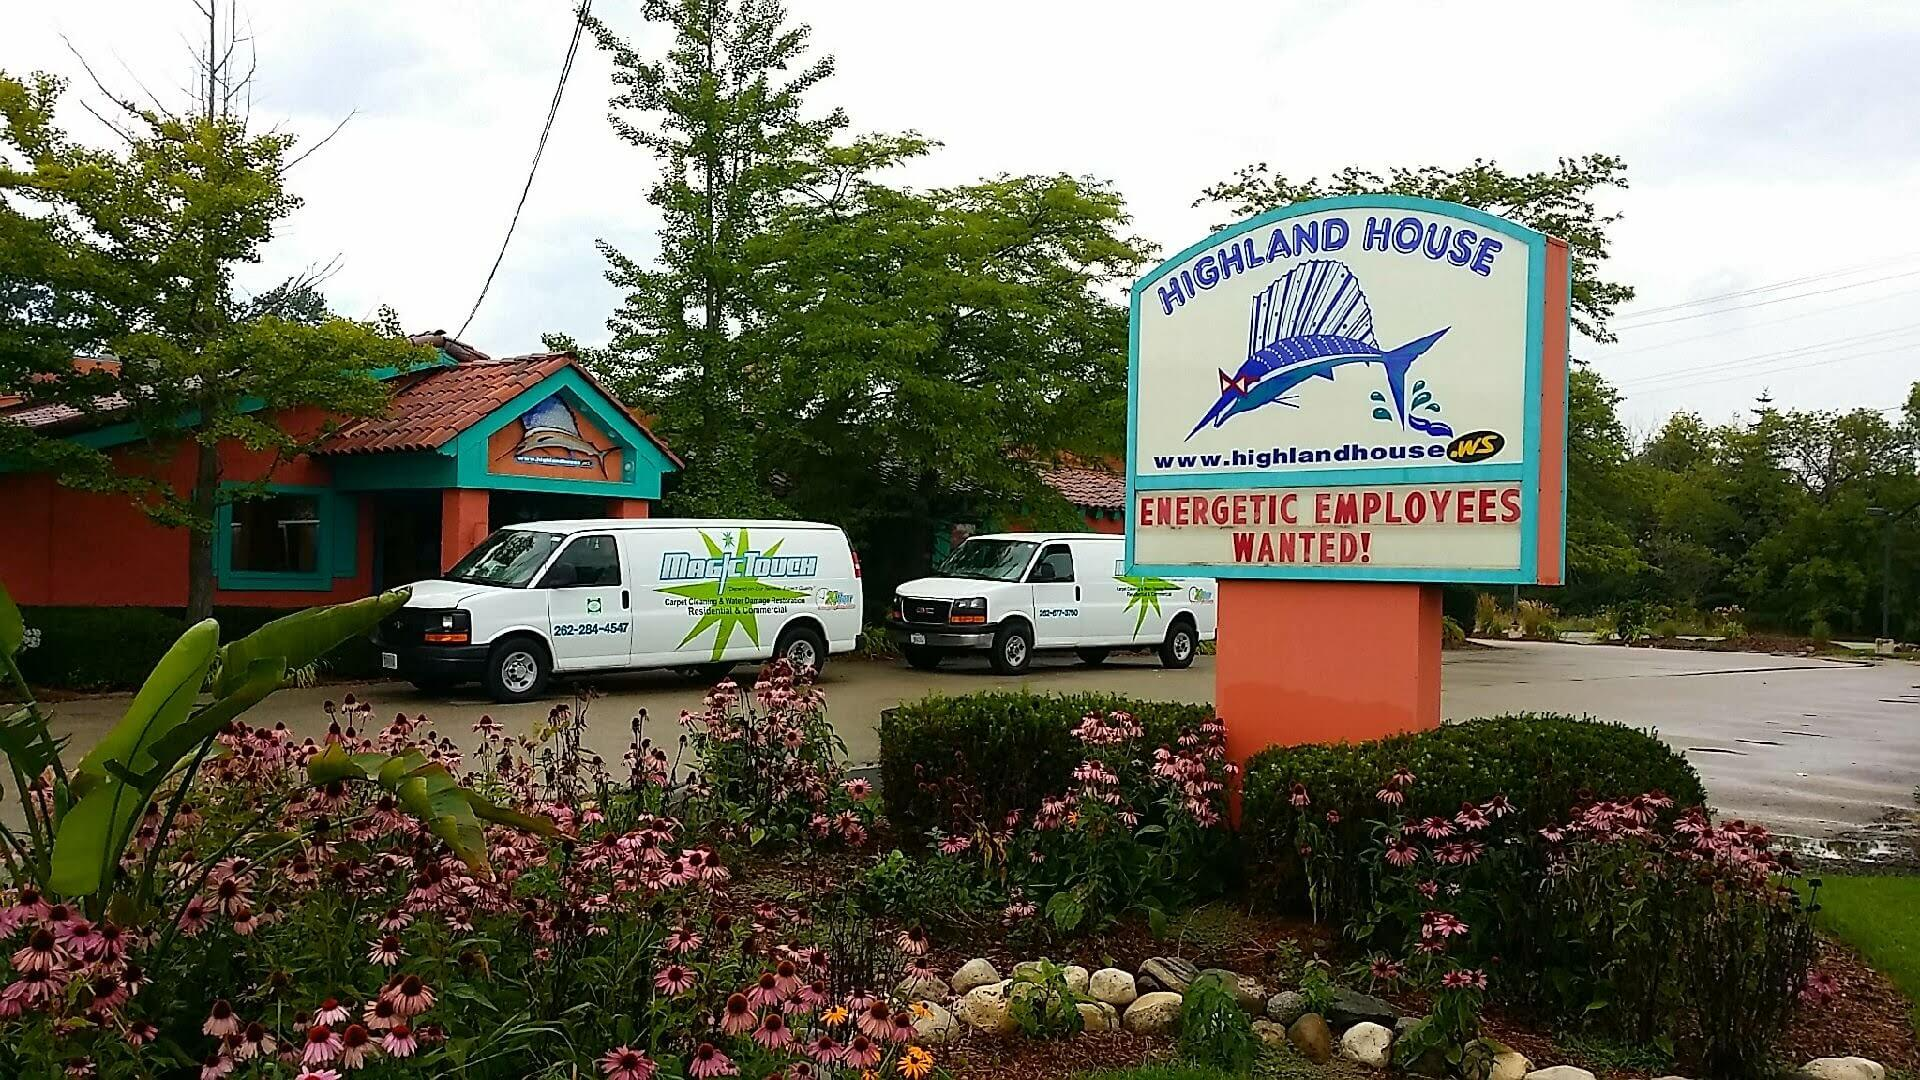 Magic Touch Carpet Cleaning and Water Damage Restoration vans parked outside of the Highland House restaurant in Mequon, WI.